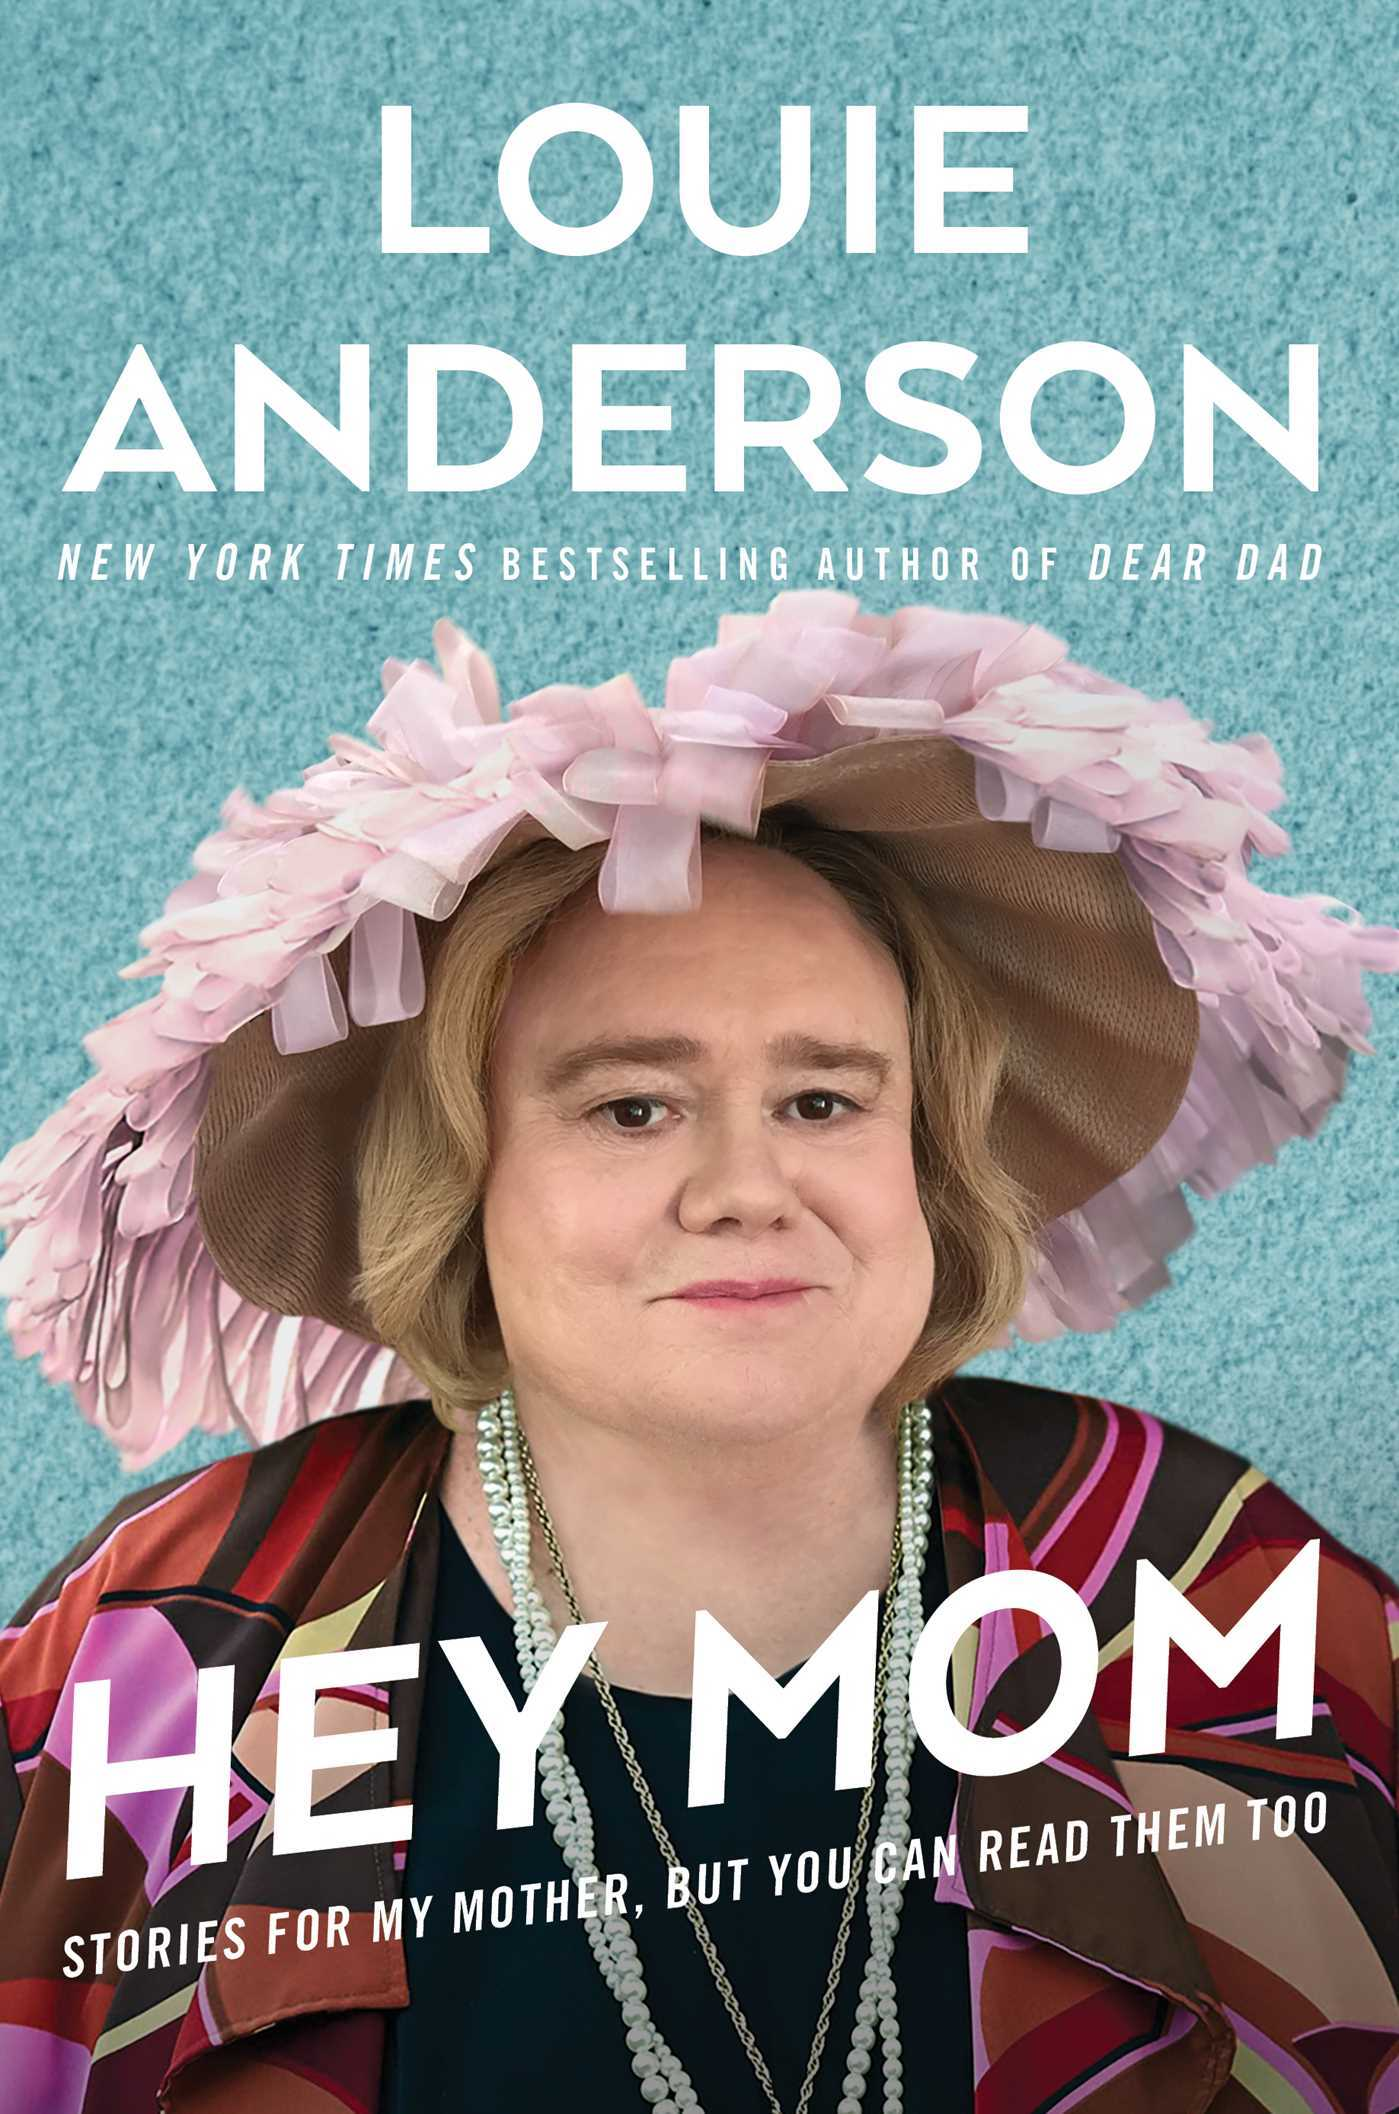 Hey Mom Stories for My Mother, But You Can Read Them Too